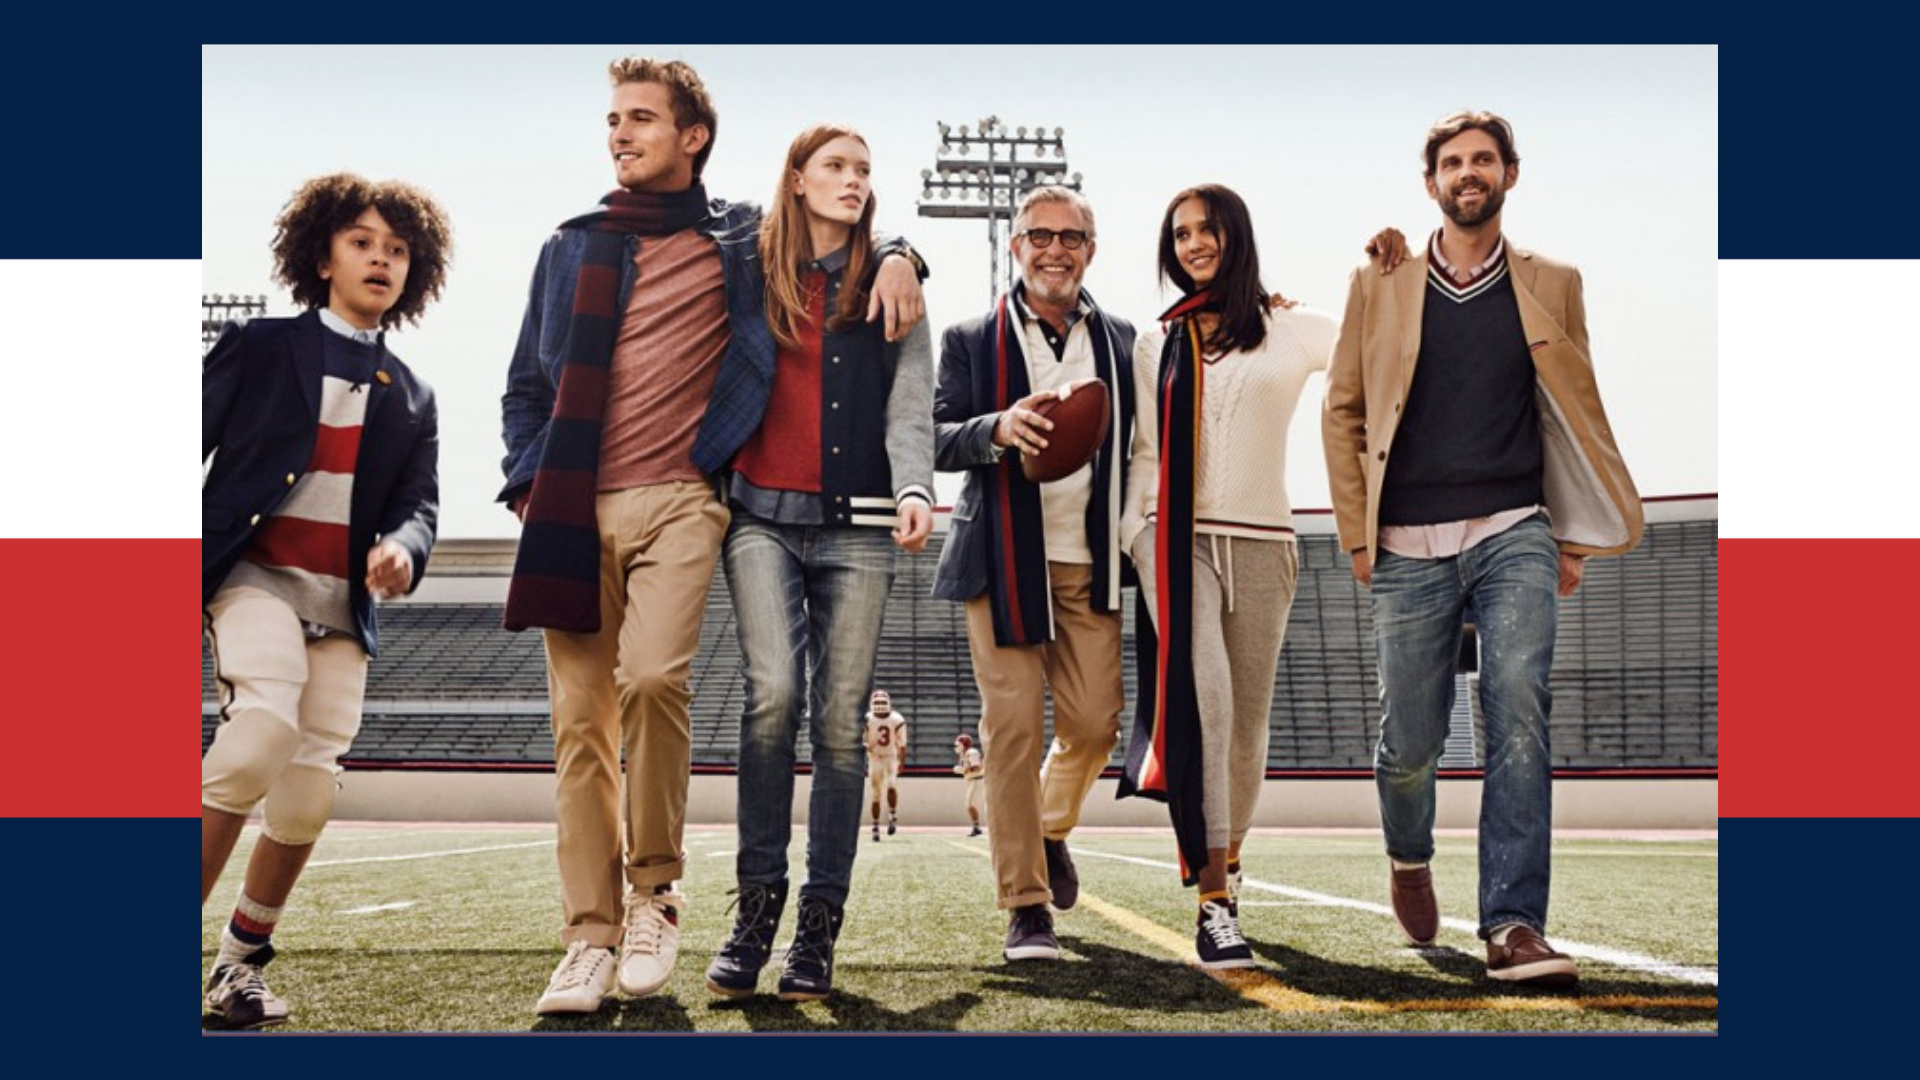 Why We're Betting On Tommy Hilfiger To Steer The Circular Fashion Movement